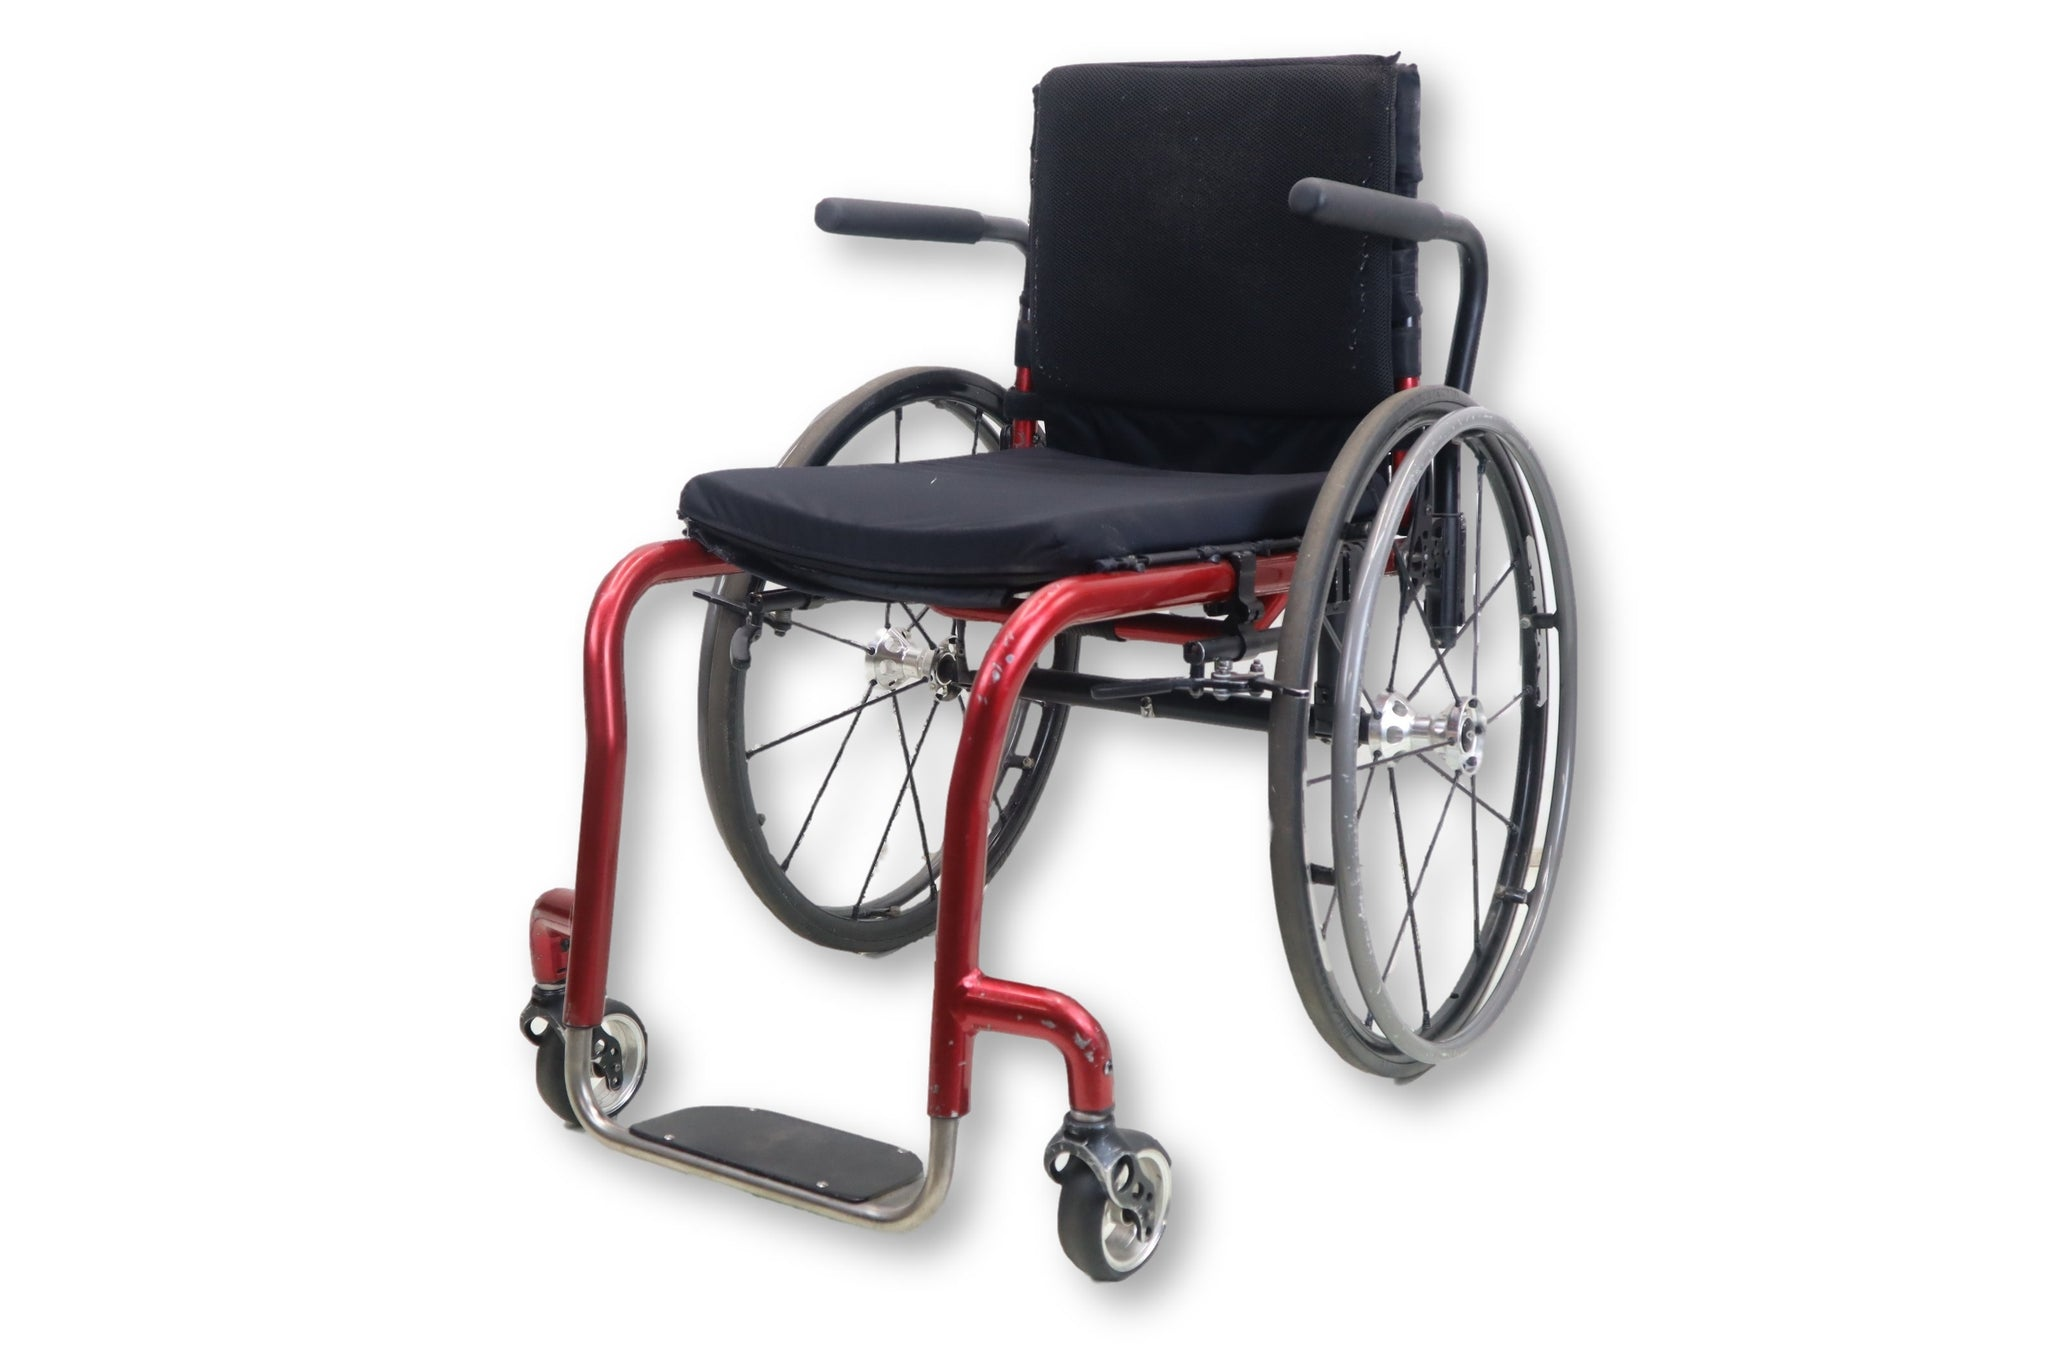 Quickie Rigid Lightweight Aluminum Frame Manual Wheelchair | 16